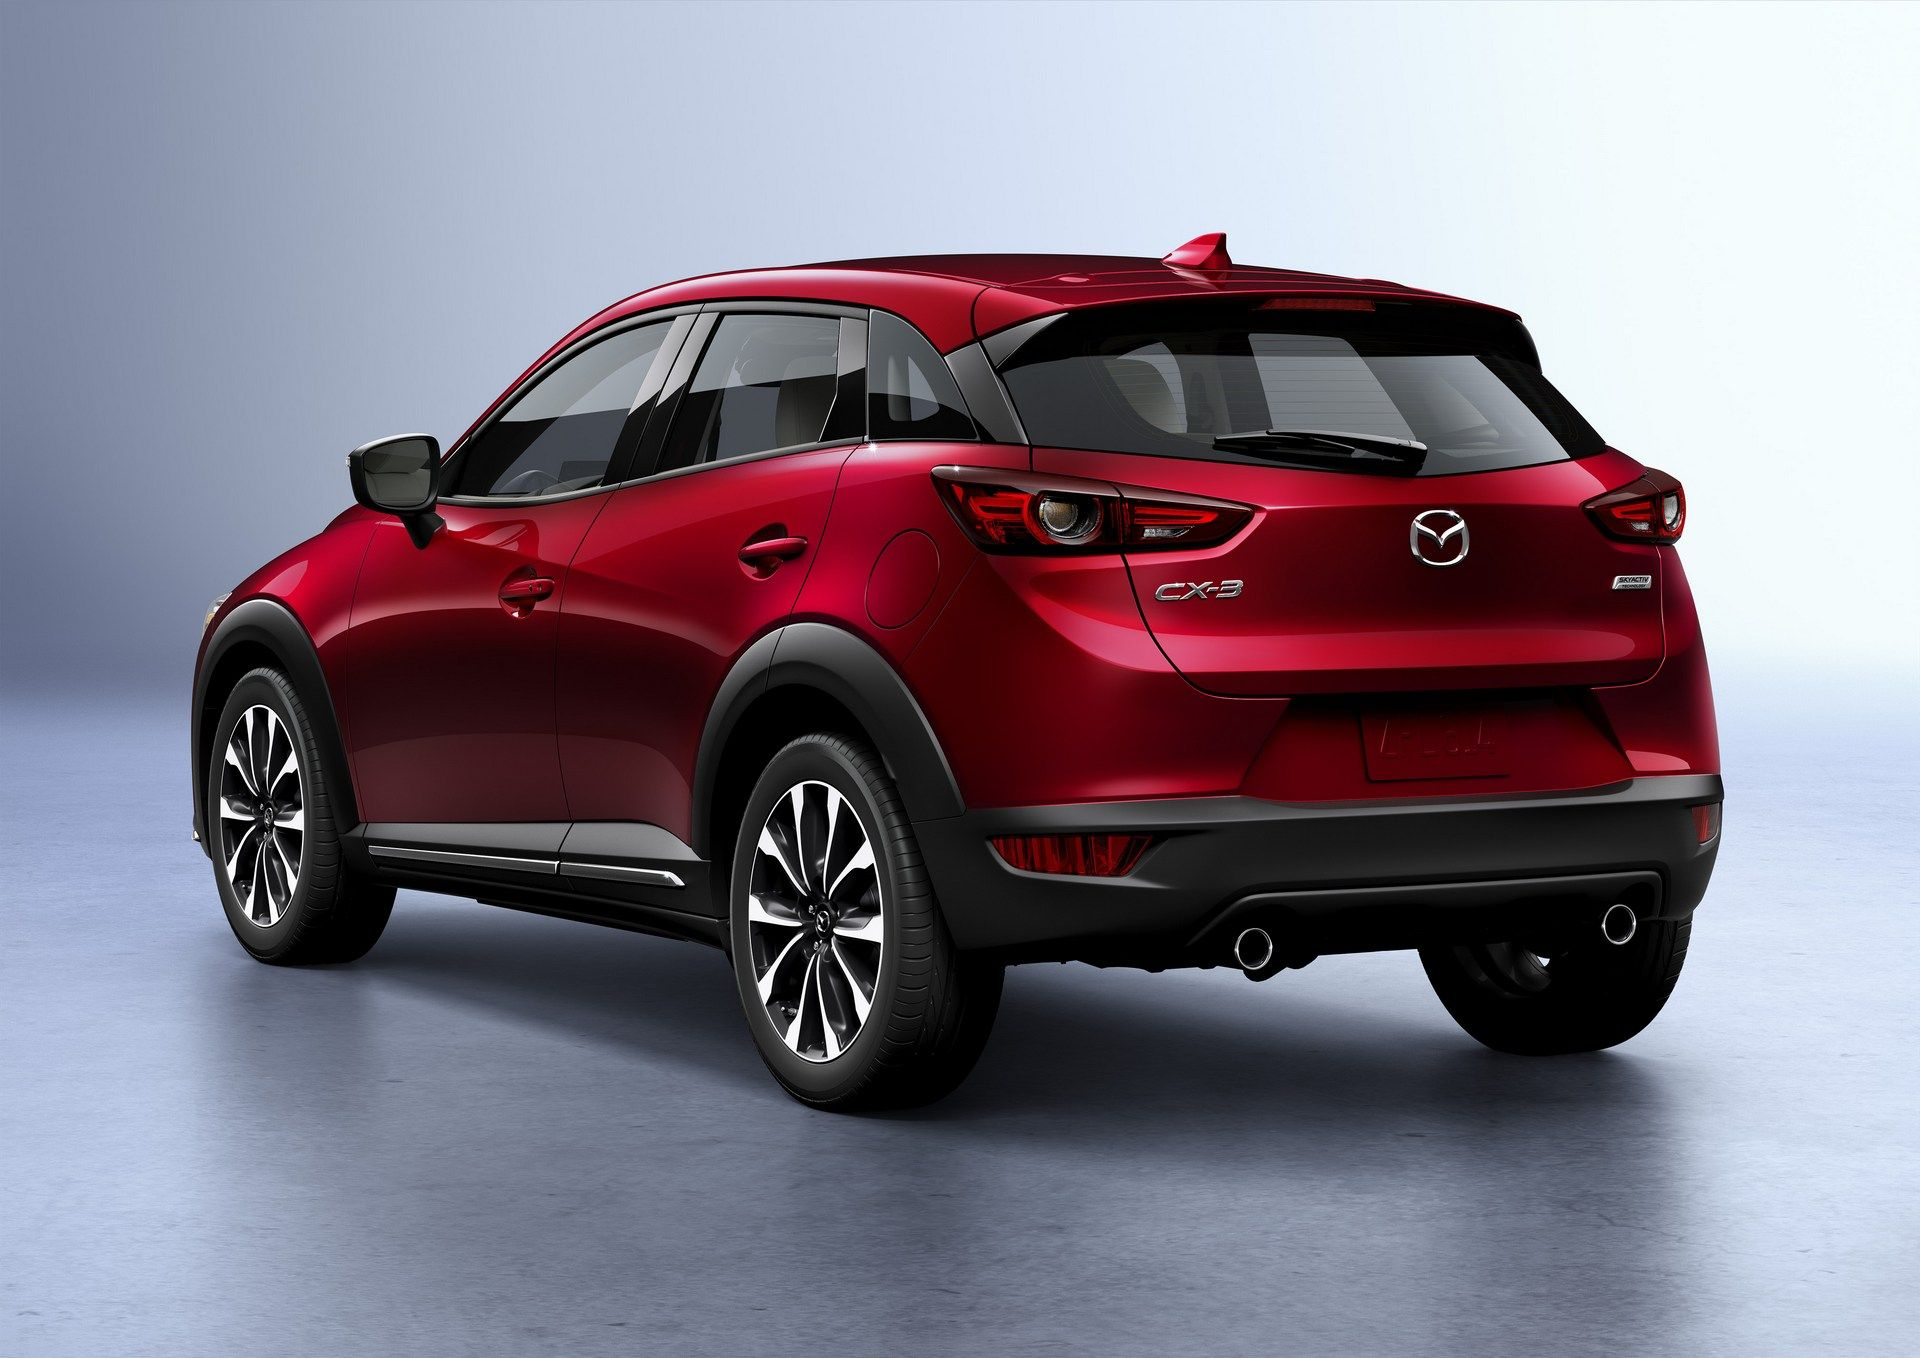 2019 mazda cx 3 goes on sale this month for 20 390 carscoops. Black Bedroom Furniture Sets. Home Design Ideas